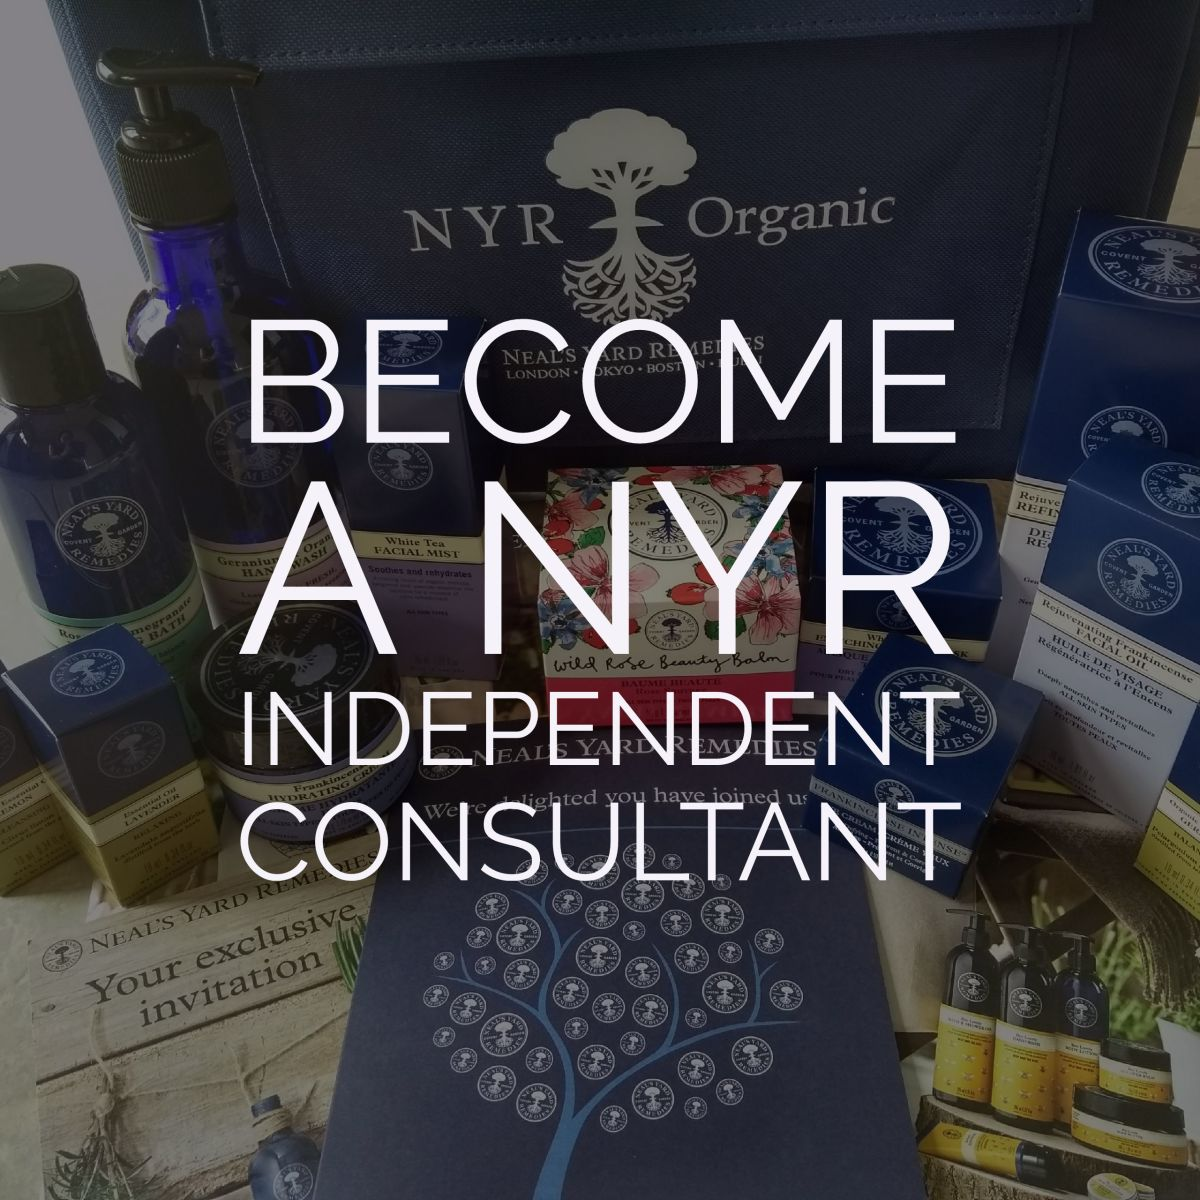 8 Reasons to become a Neal's Yard Remedies Independent Consultant